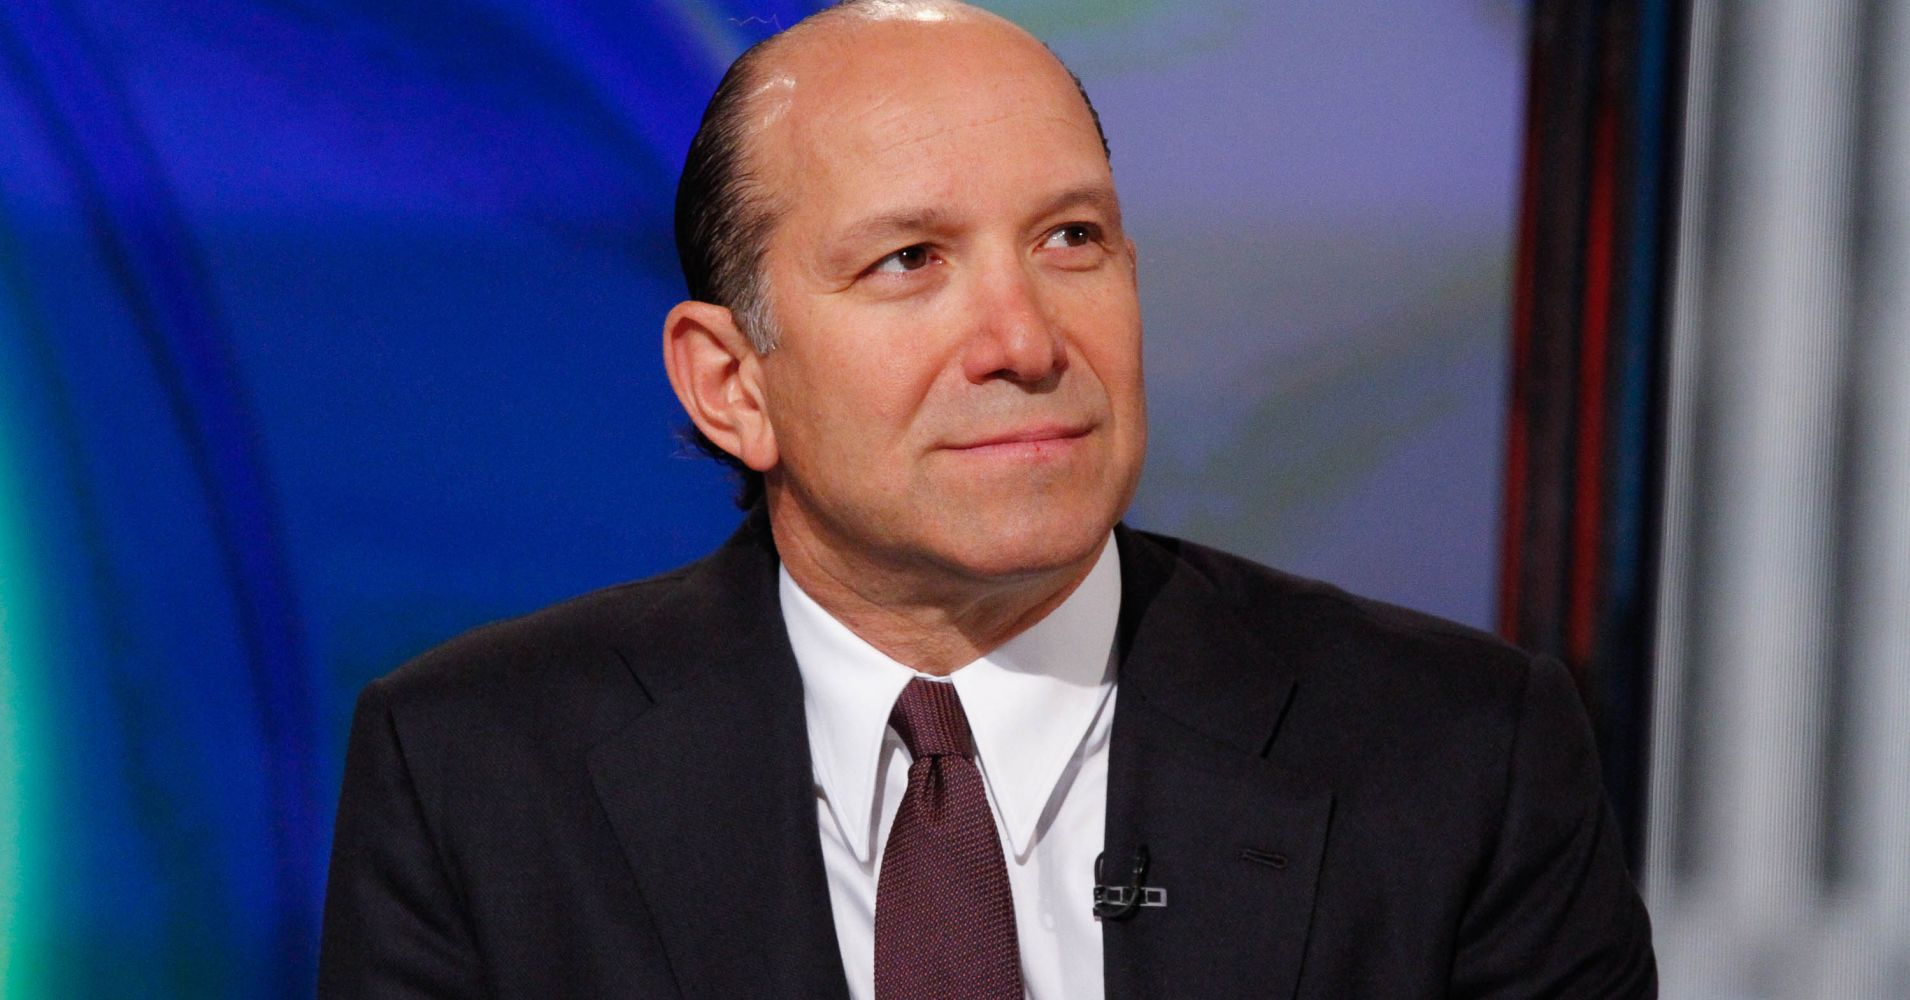 'Not your grandmother's economy' — Cantor CEO Howard Lutnick says growth still has 2 years to run